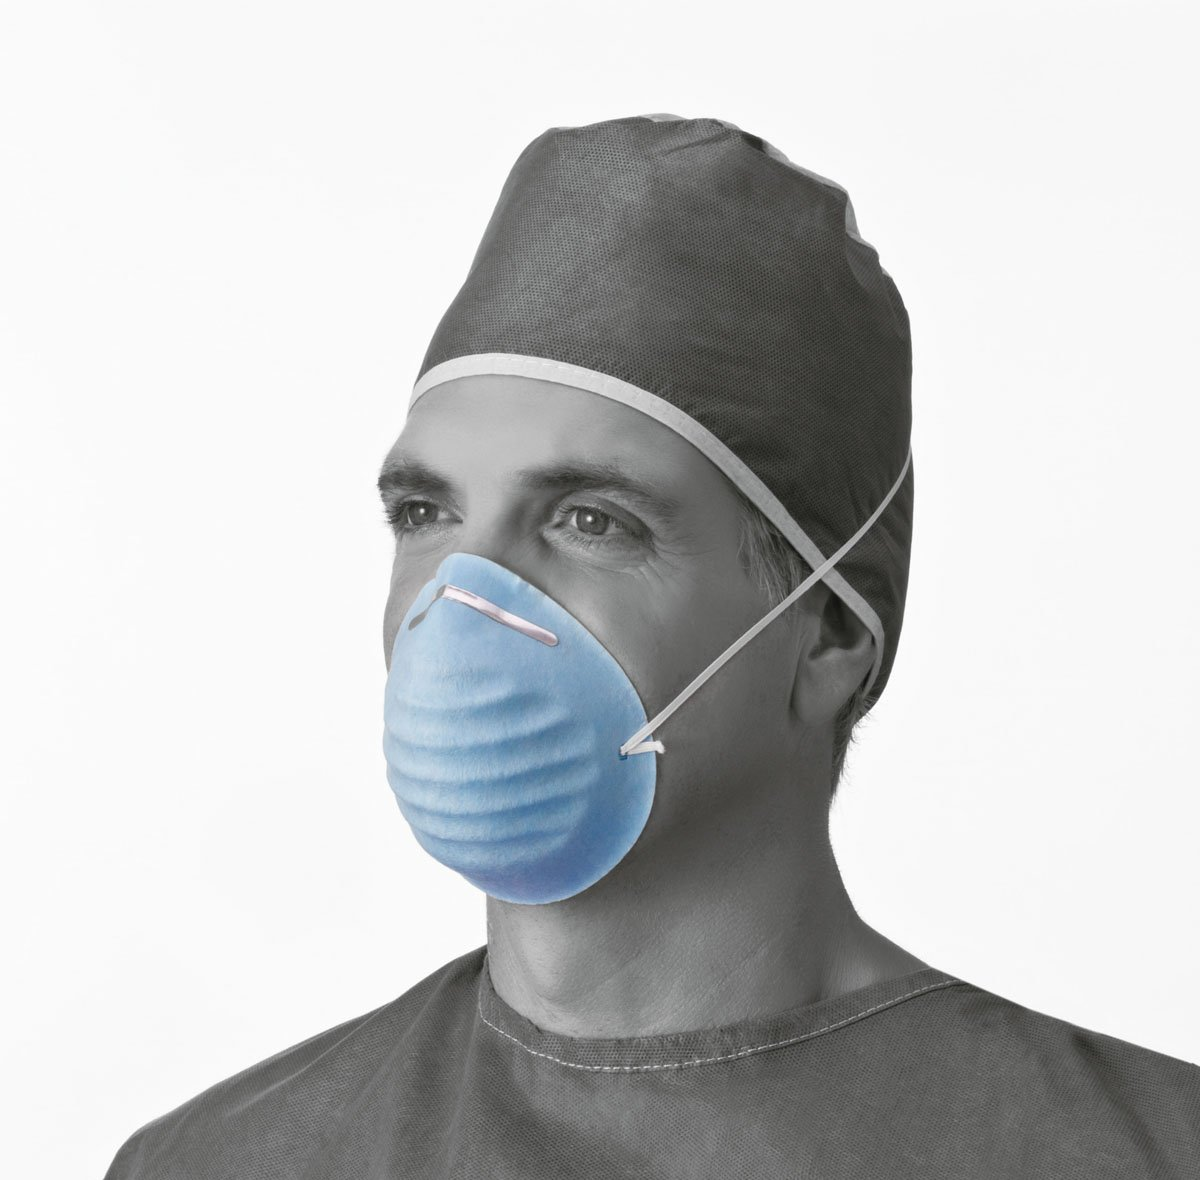 Medline Industries NON27381 Surgical Face Mask, Cone-Style, Latex Free, Blue (Pack of 300) by Medline